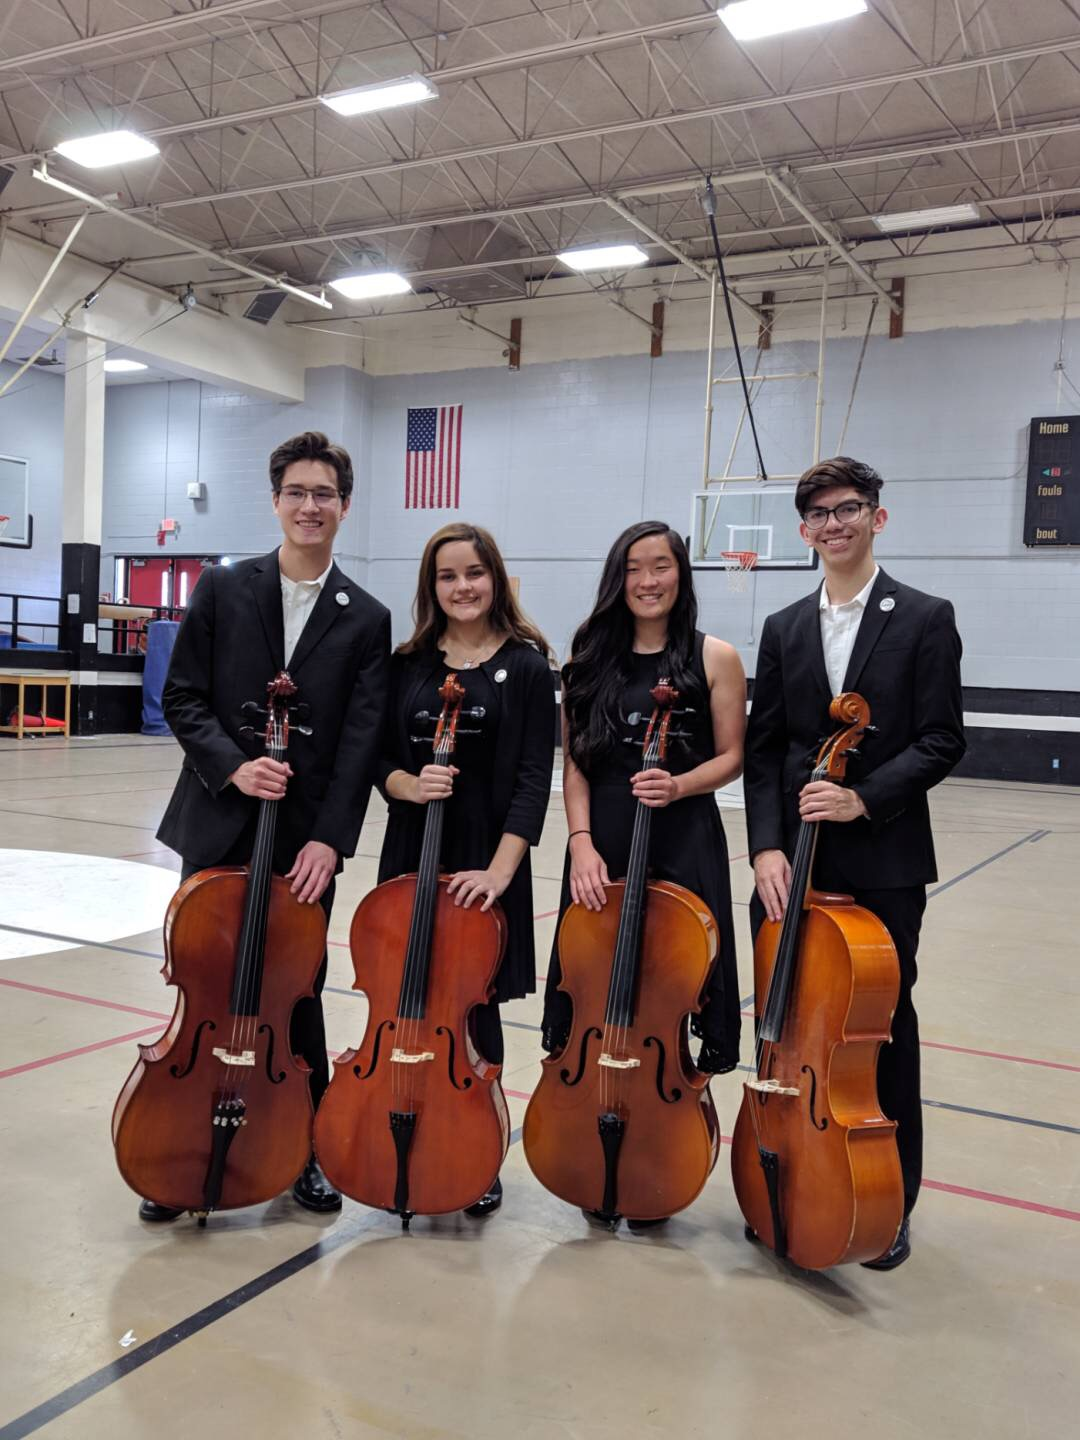 Cello Quartet  From left to right (David Santacruz, Alexa Oaxaca, Kiara Kwan, and Carson Aliyas)